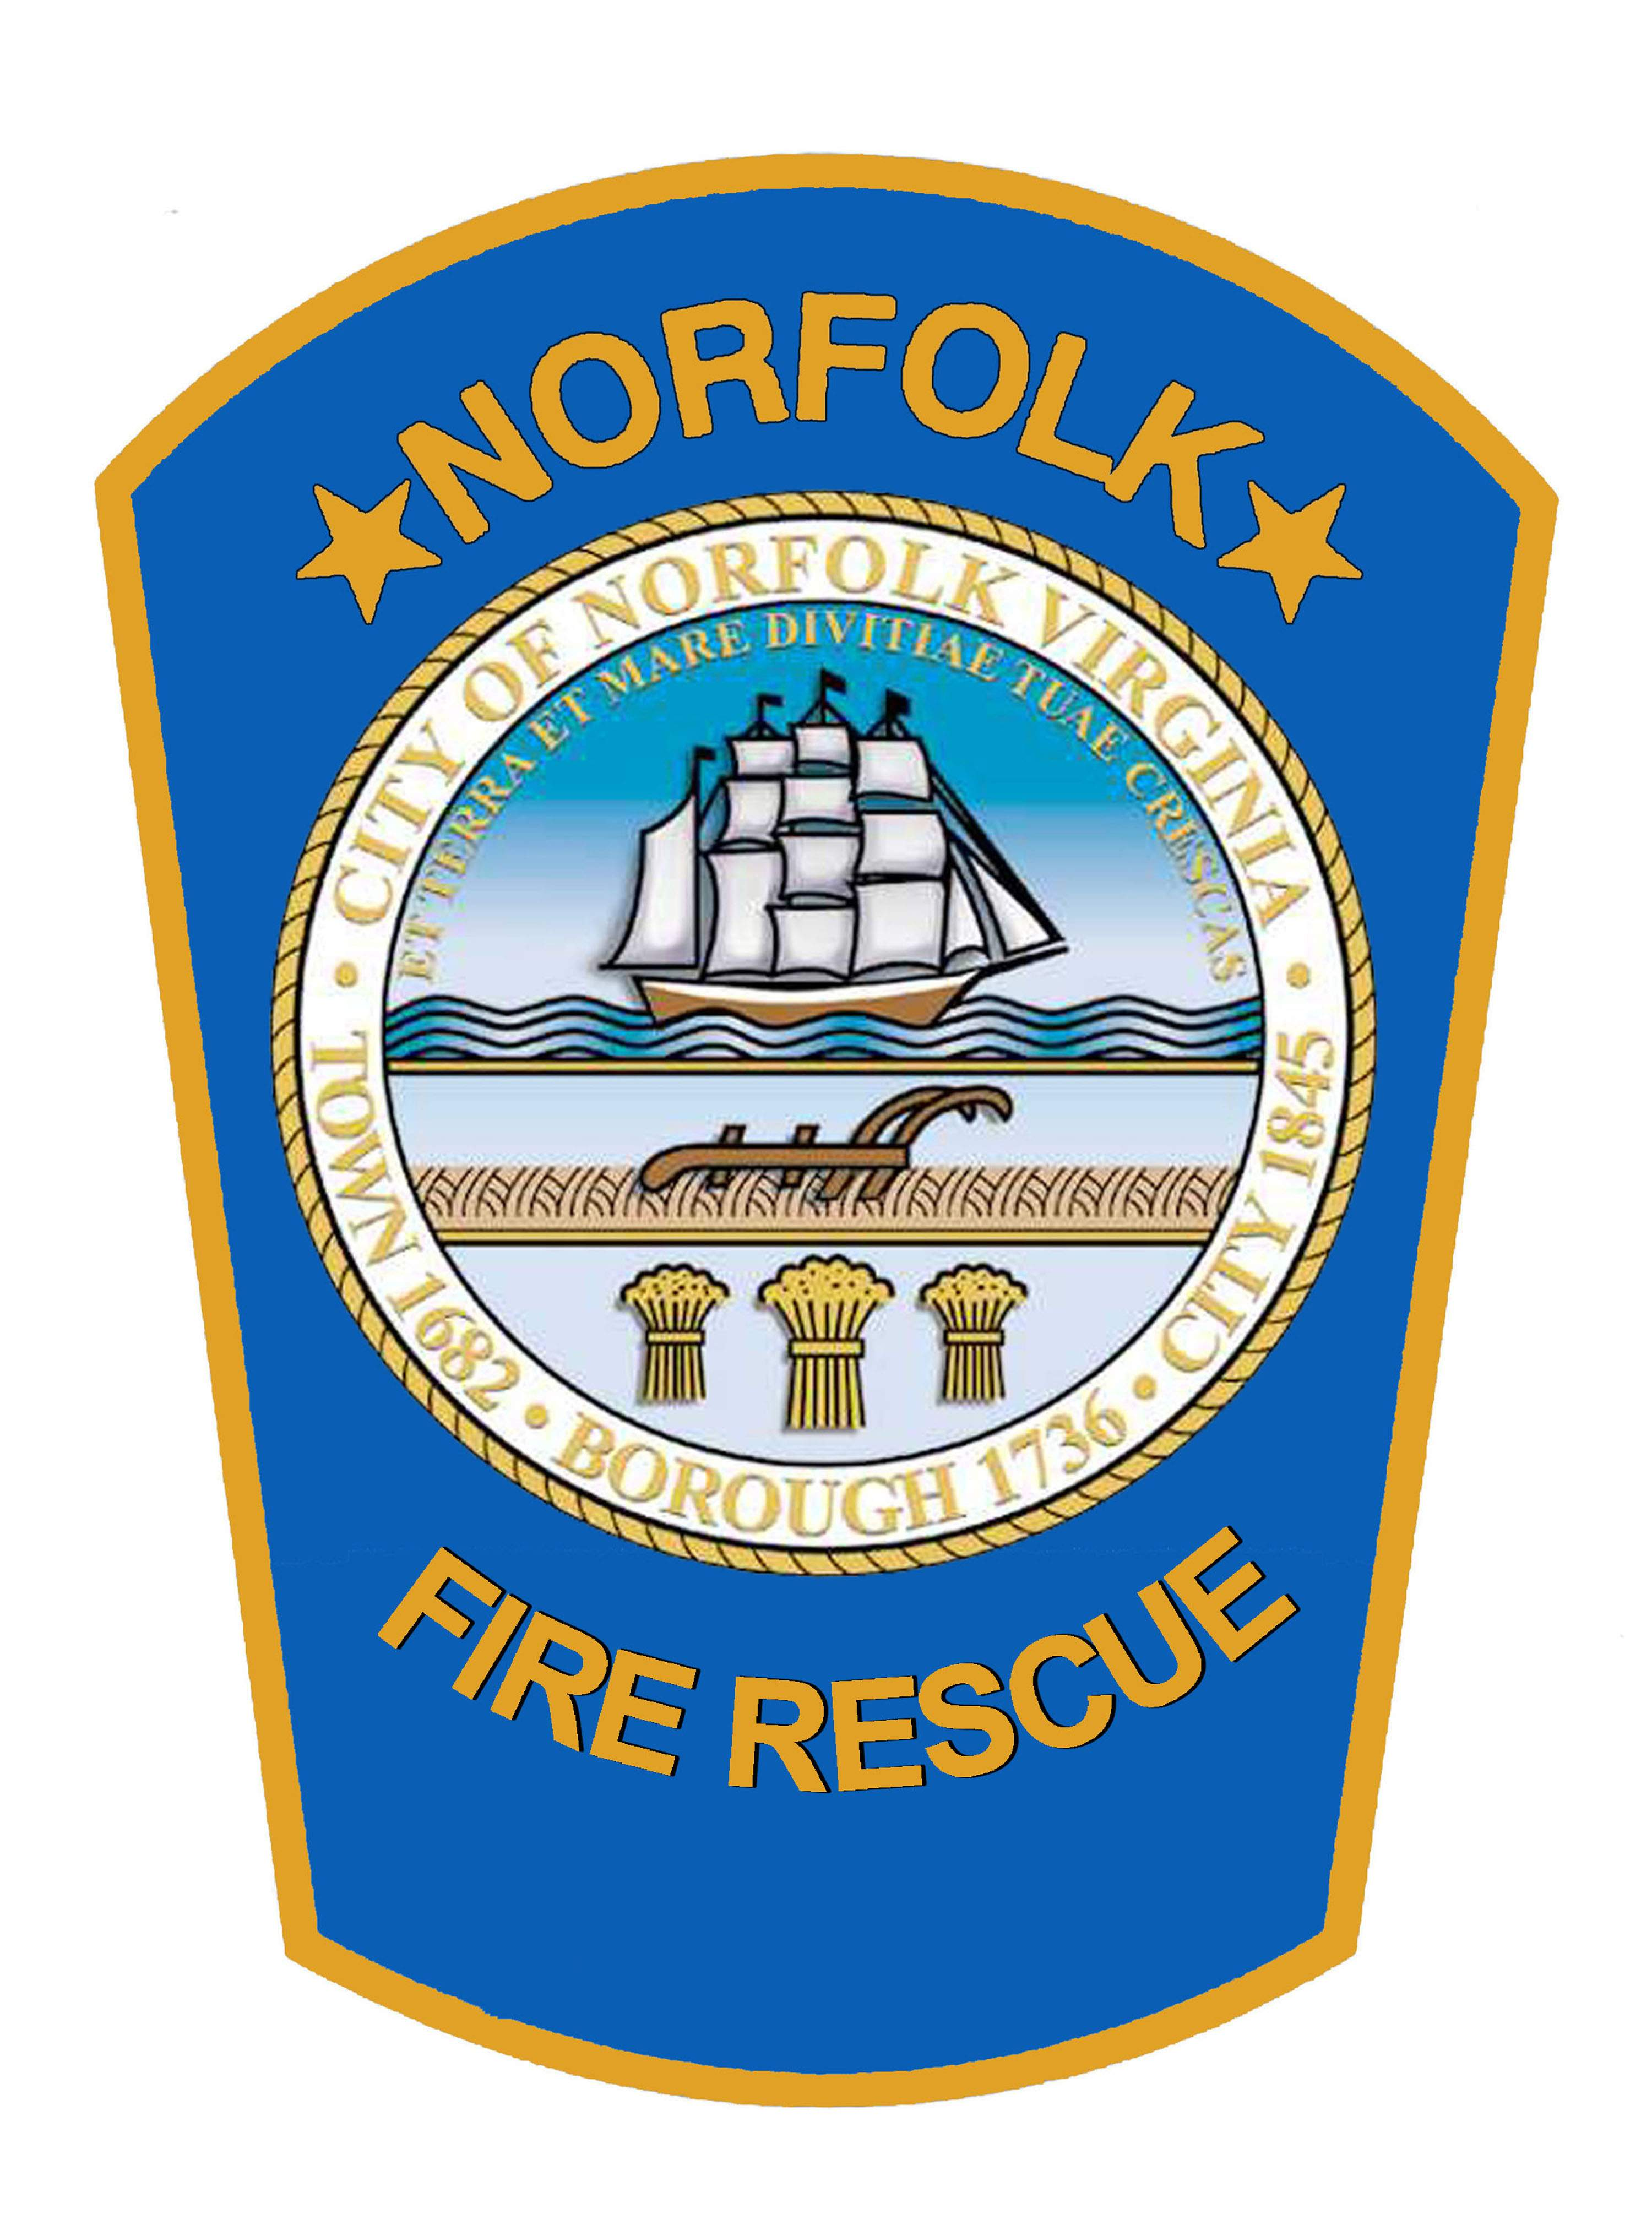 Norfolk Fire and Resuce